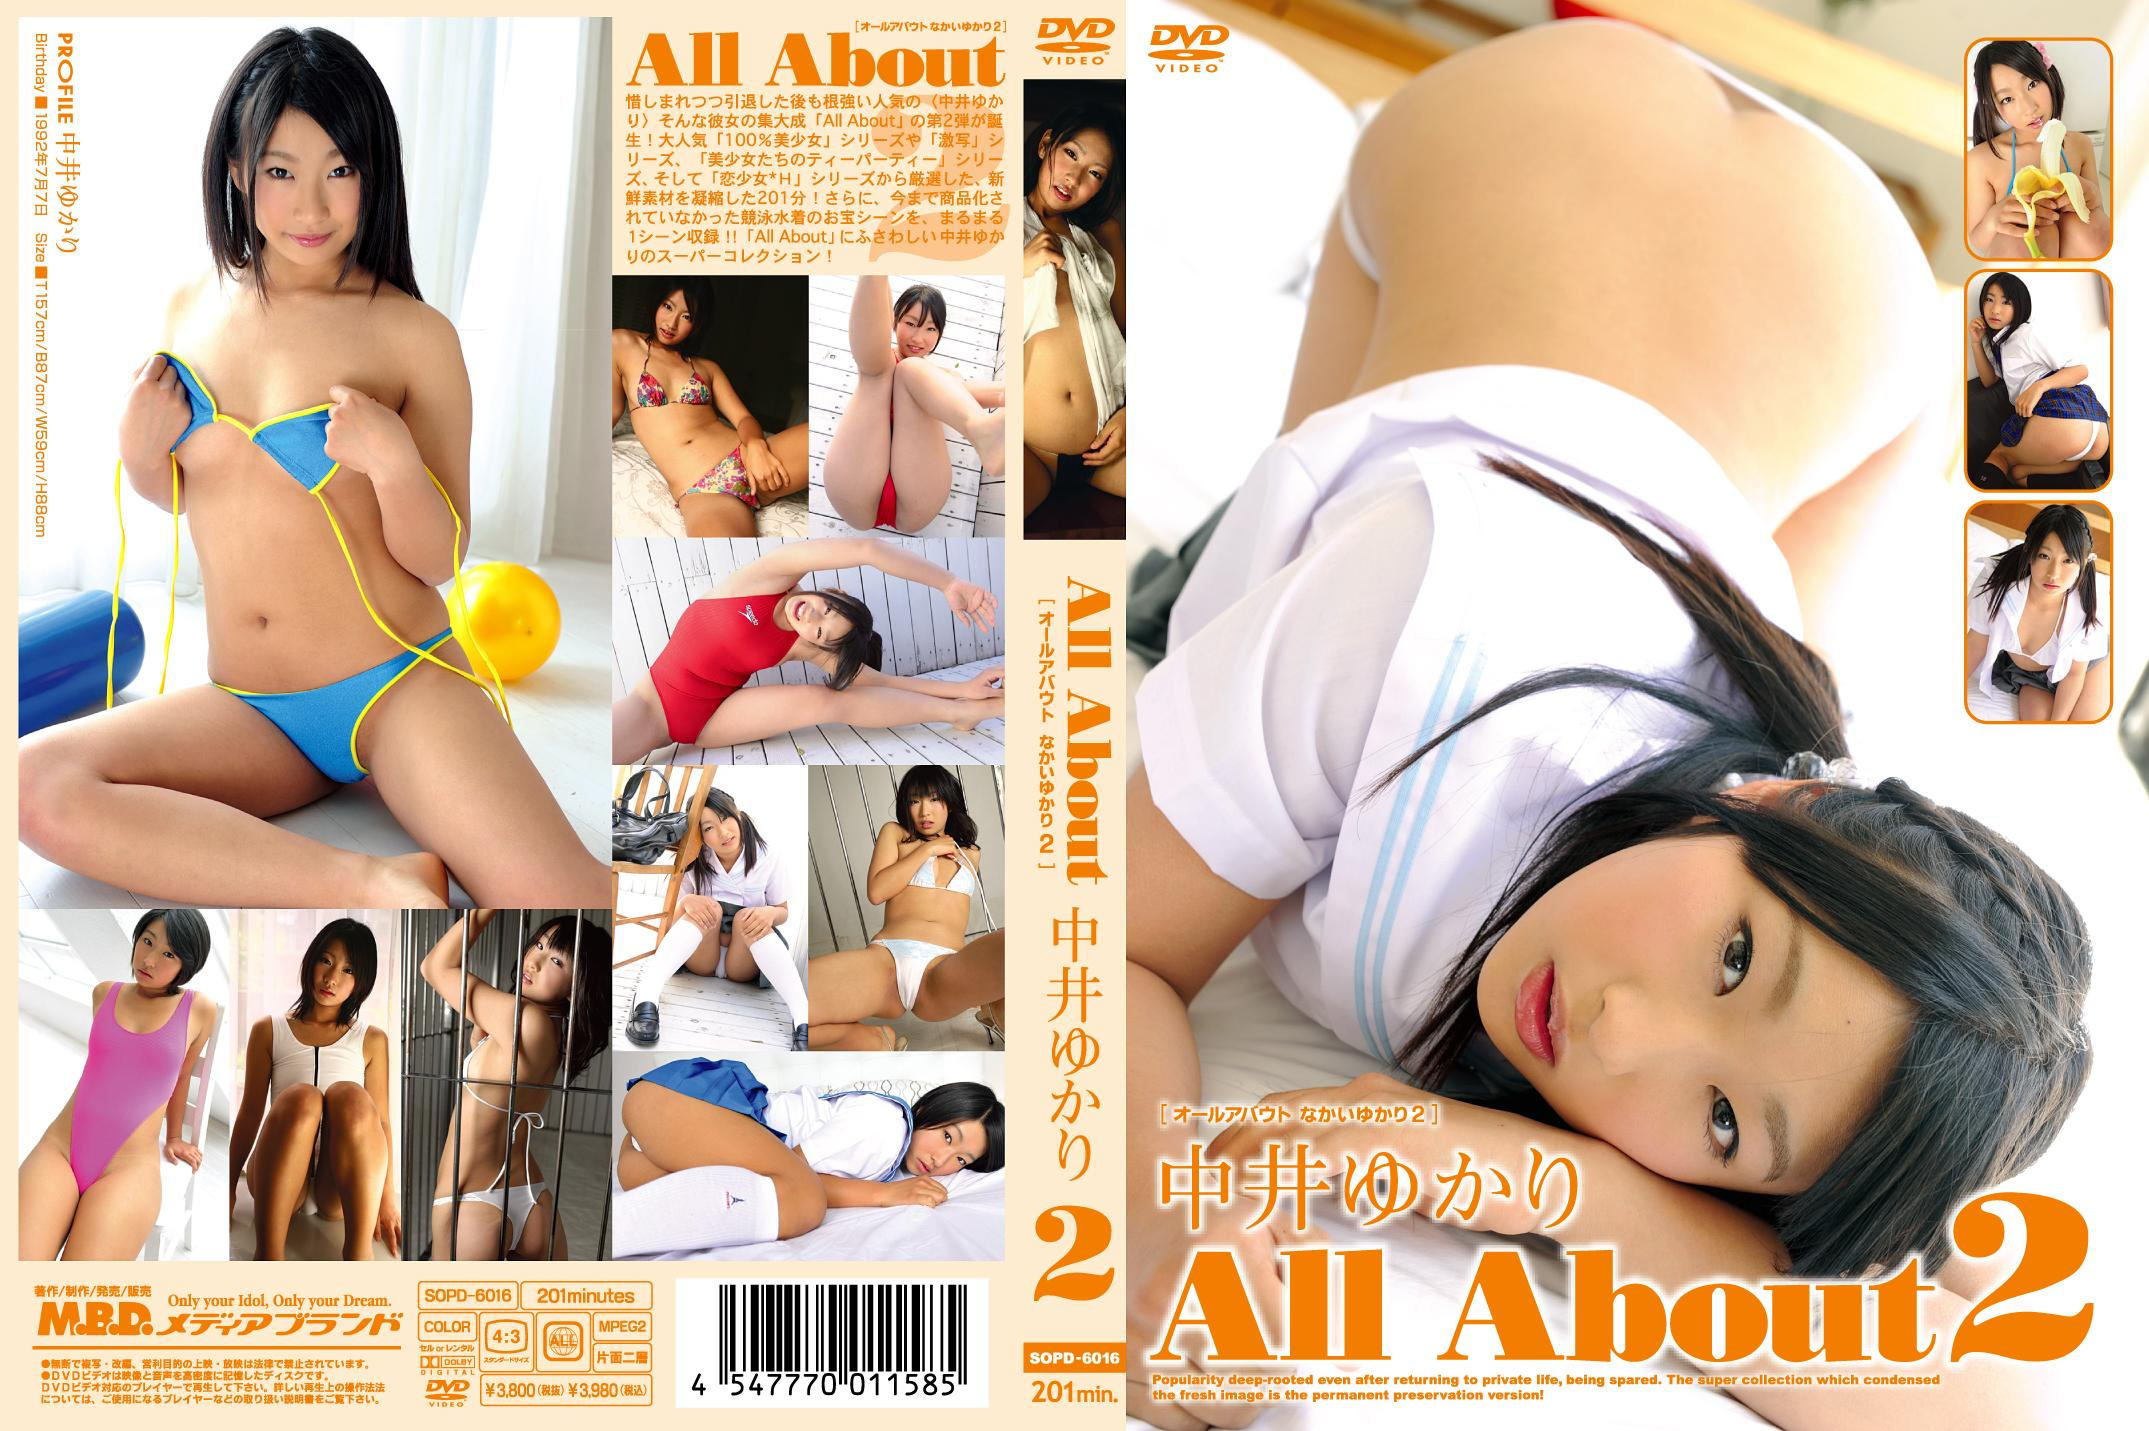 All About 2 のサムネイル画像